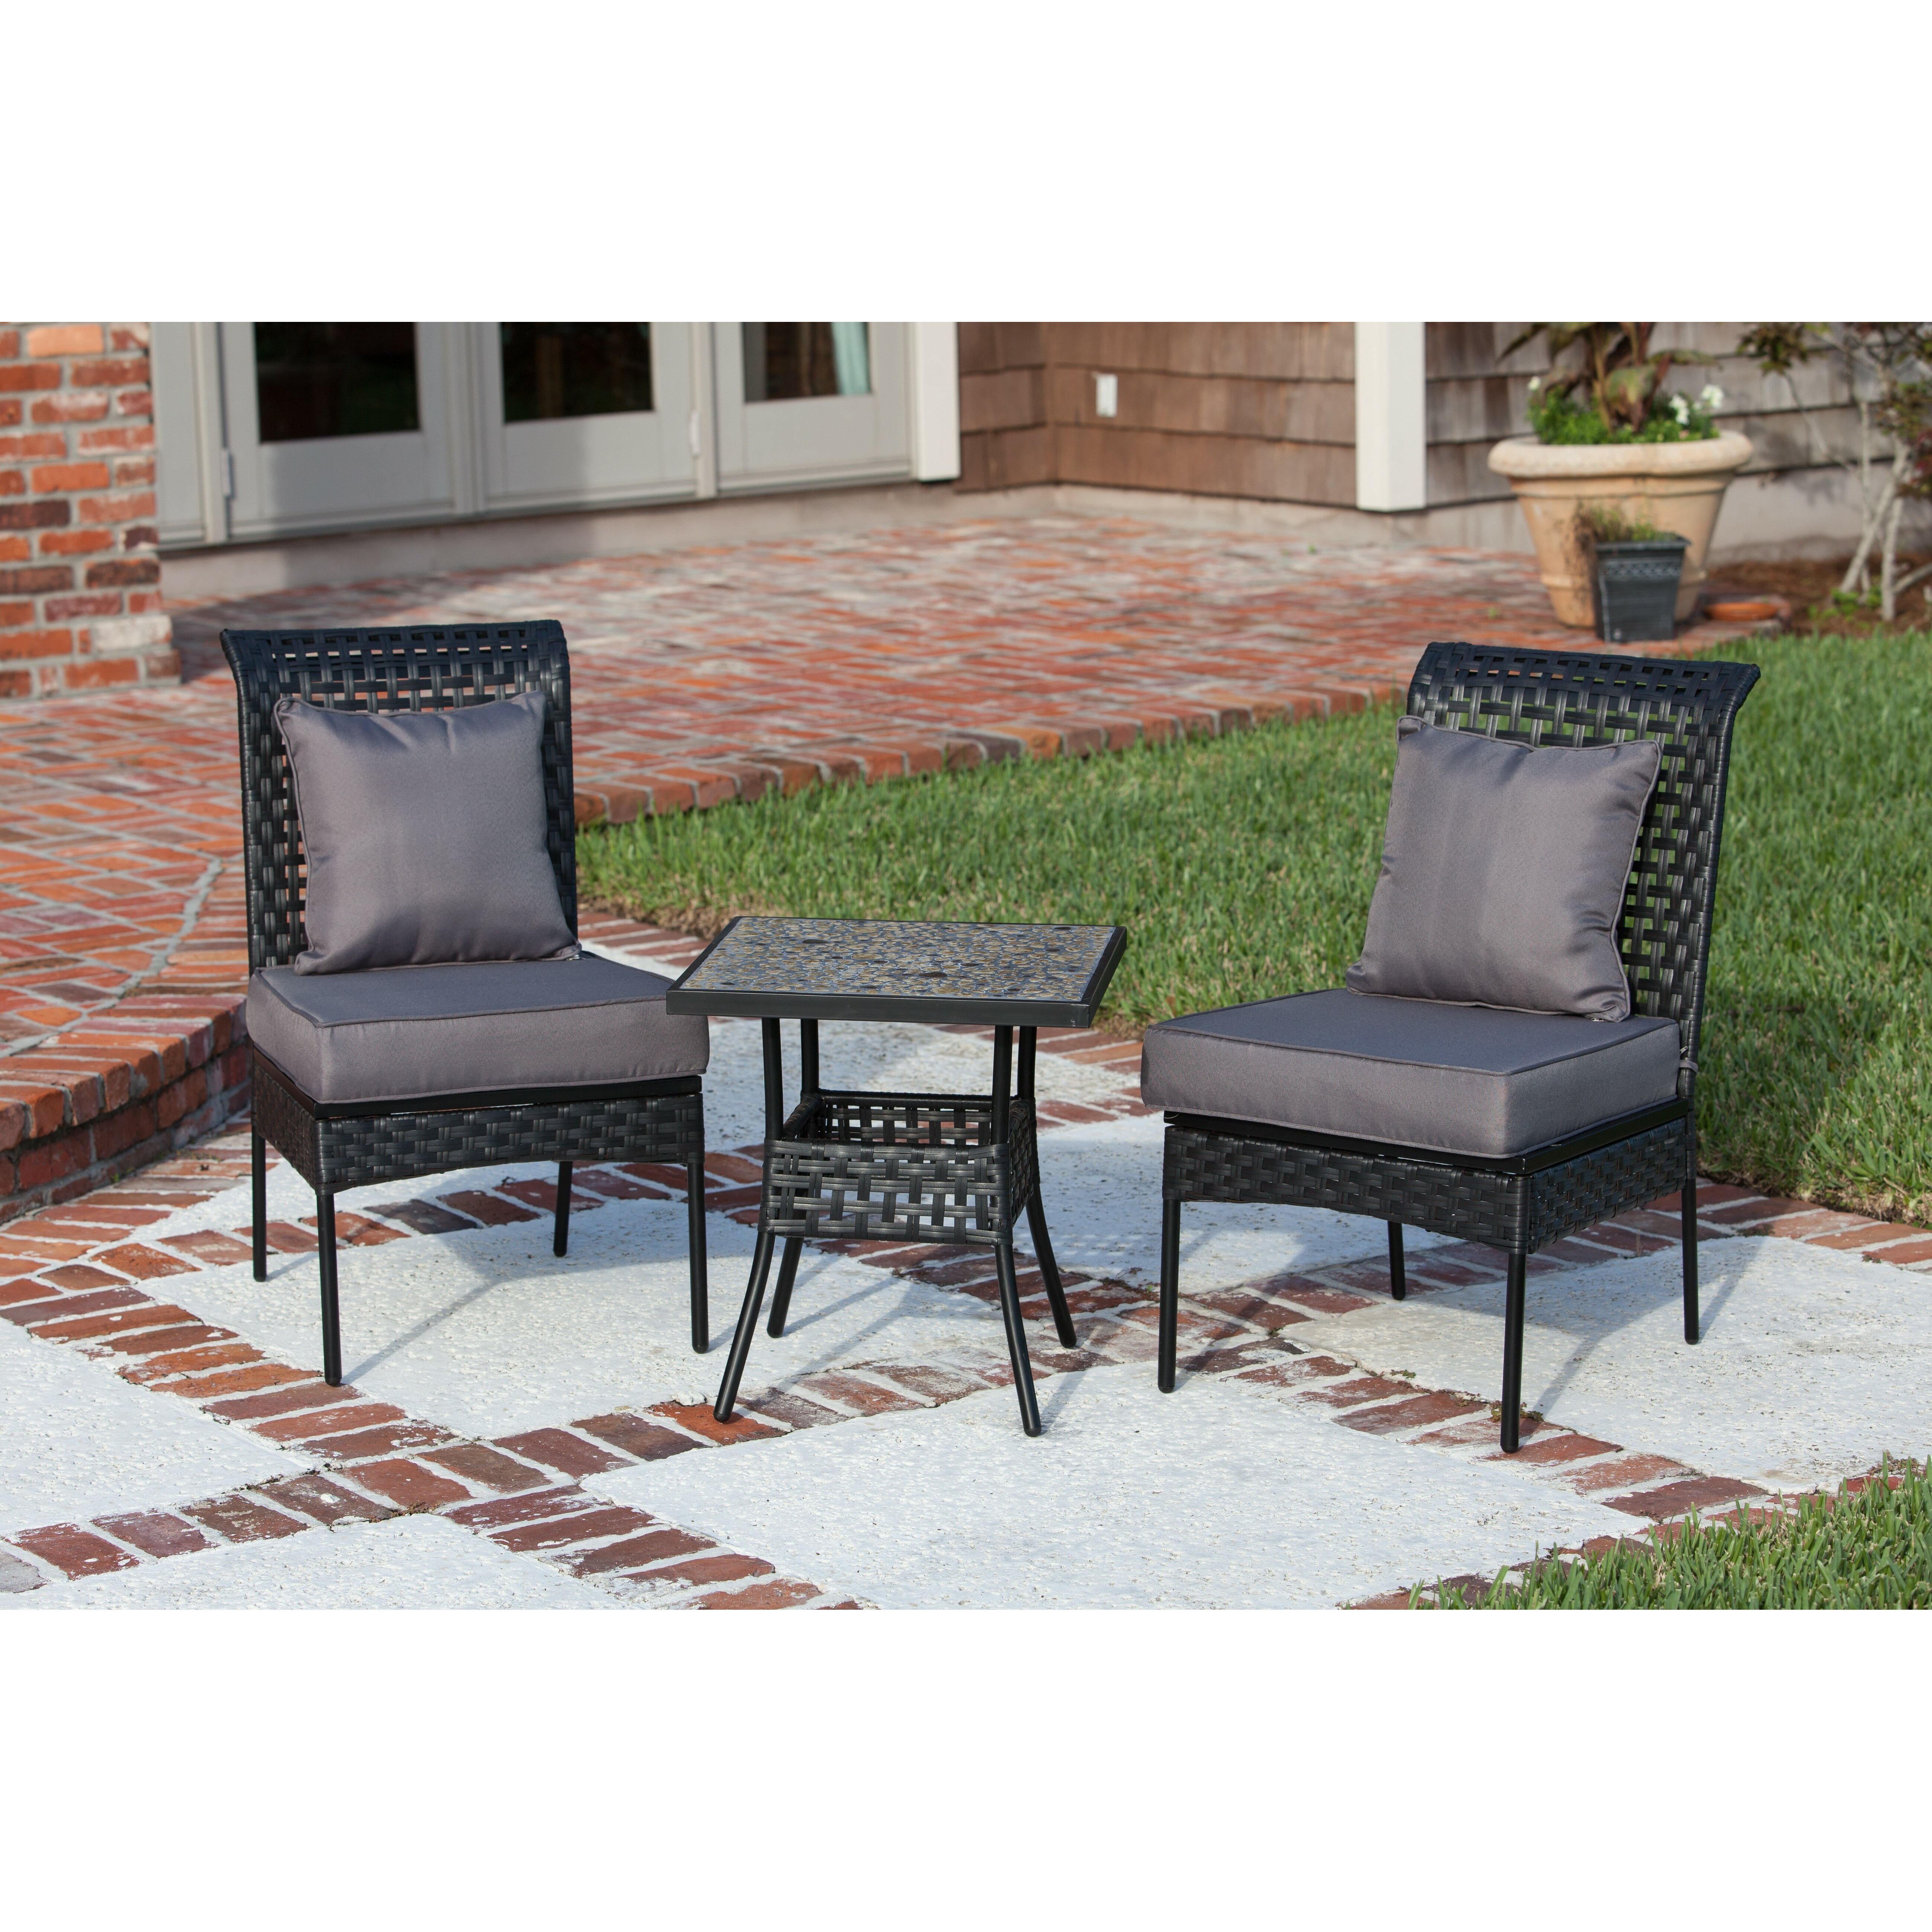 Stanley havasu 3 piece dining set reviews wayfair for Furniture 2 day shipping